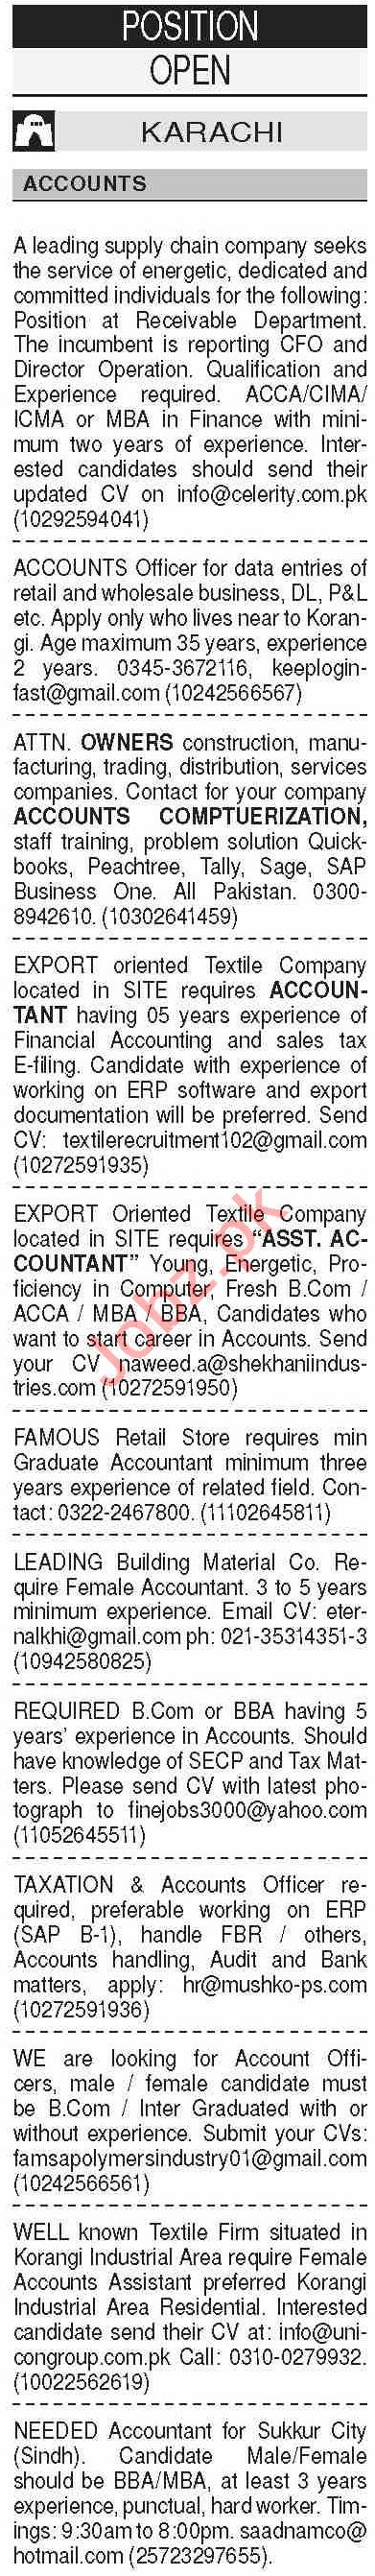 Dawn Sunday Classified Ads 13 Sep 2020 for Accounts